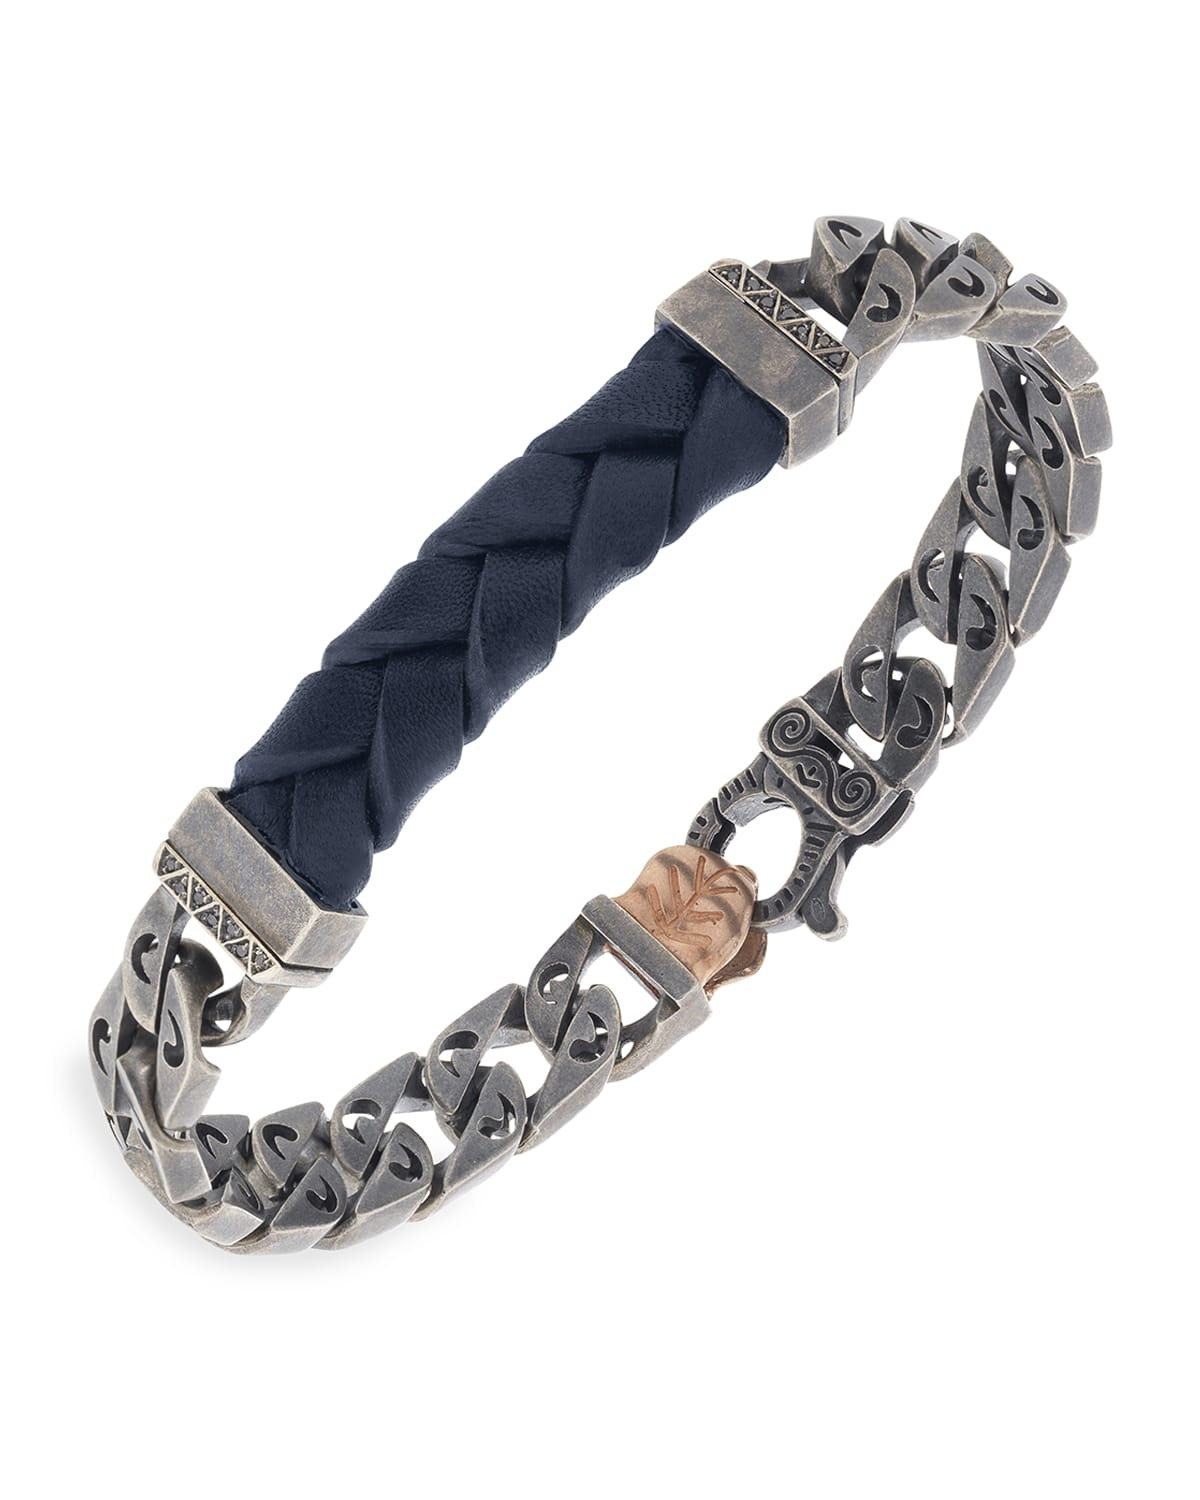 Flaming Tongue Leather Chain Bracelet with Black Diamonds